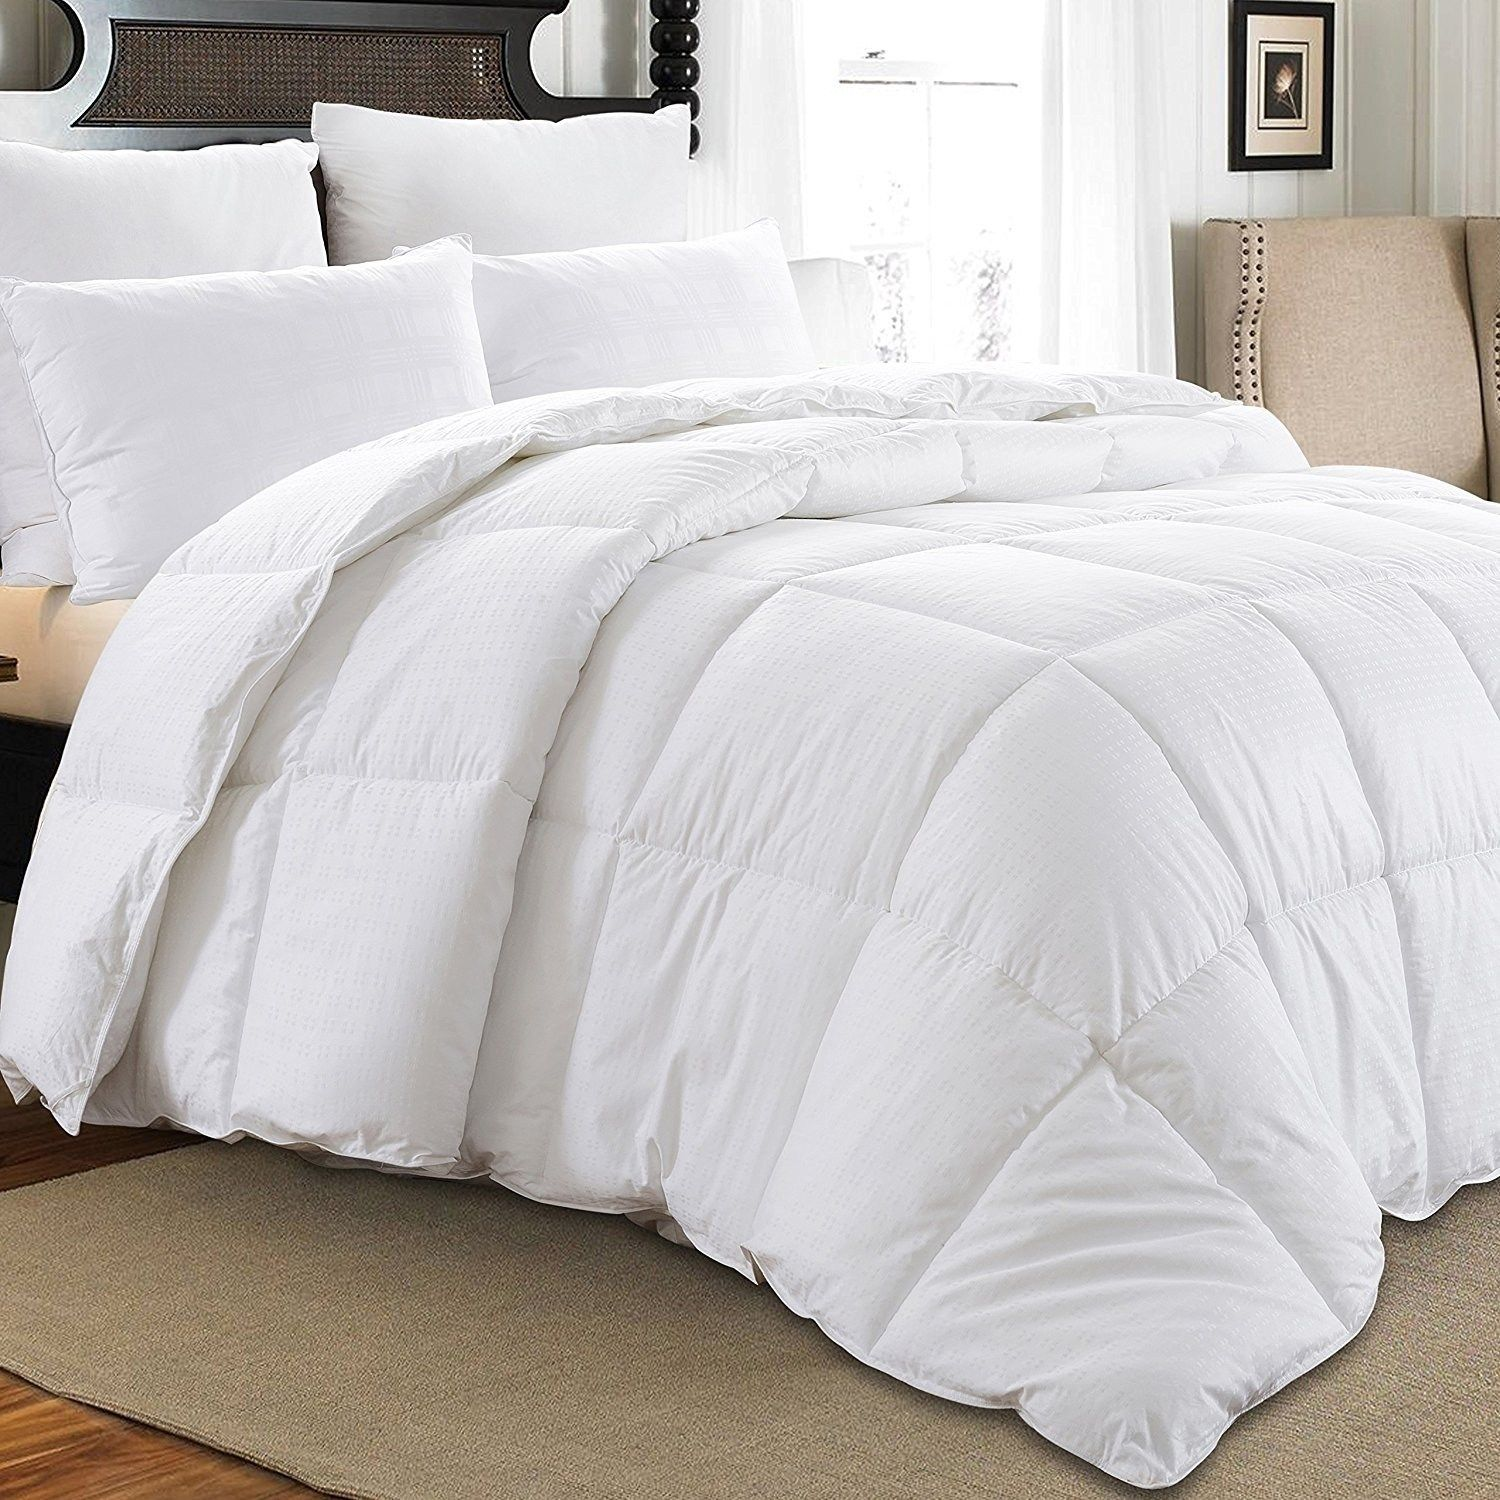 Downluxe Hypoallergenic 350 Thread Count 100 Cotton Shell Down